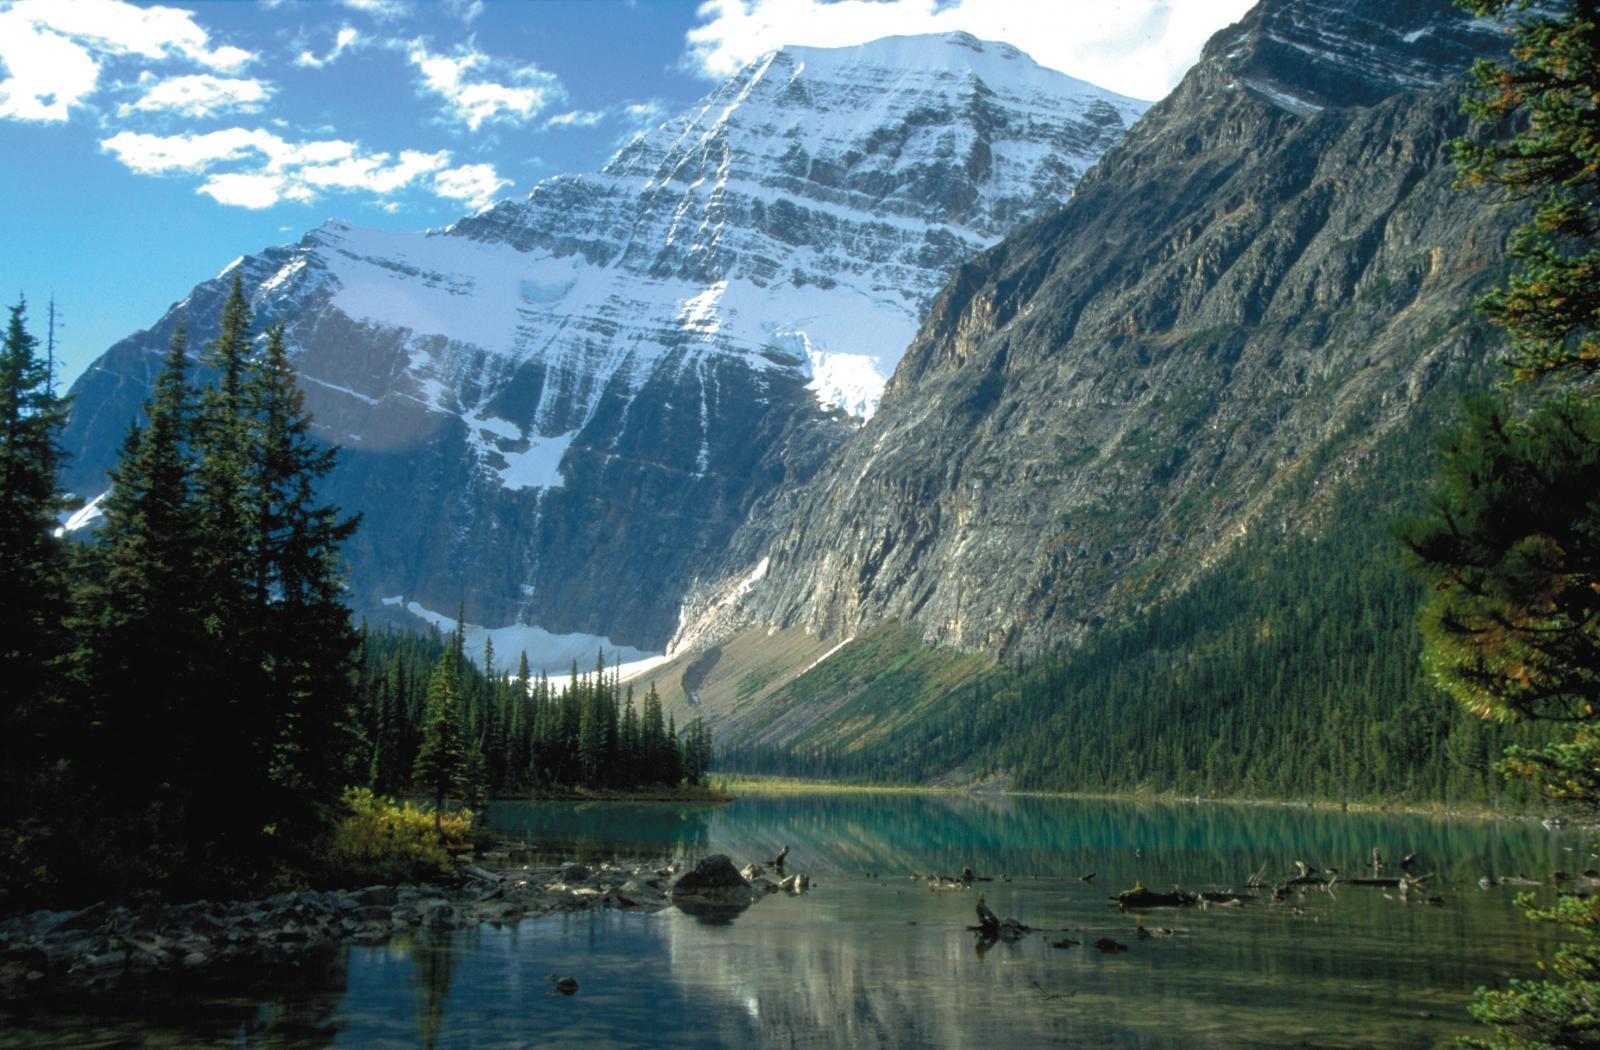 Rockies in Canada with Exodus